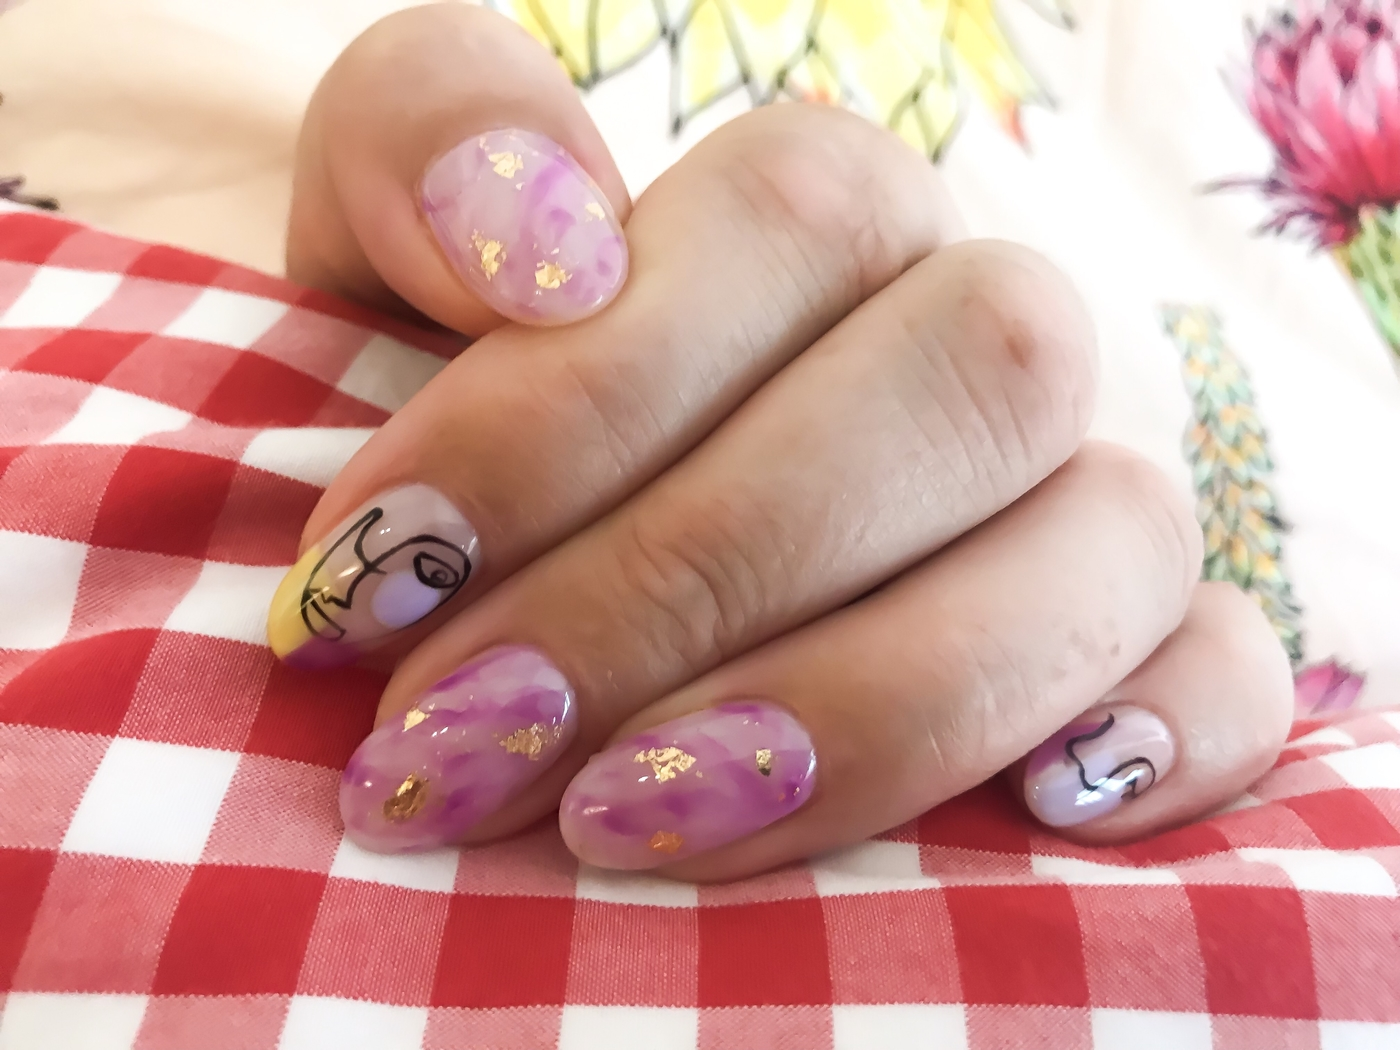 The Nailtural nail art